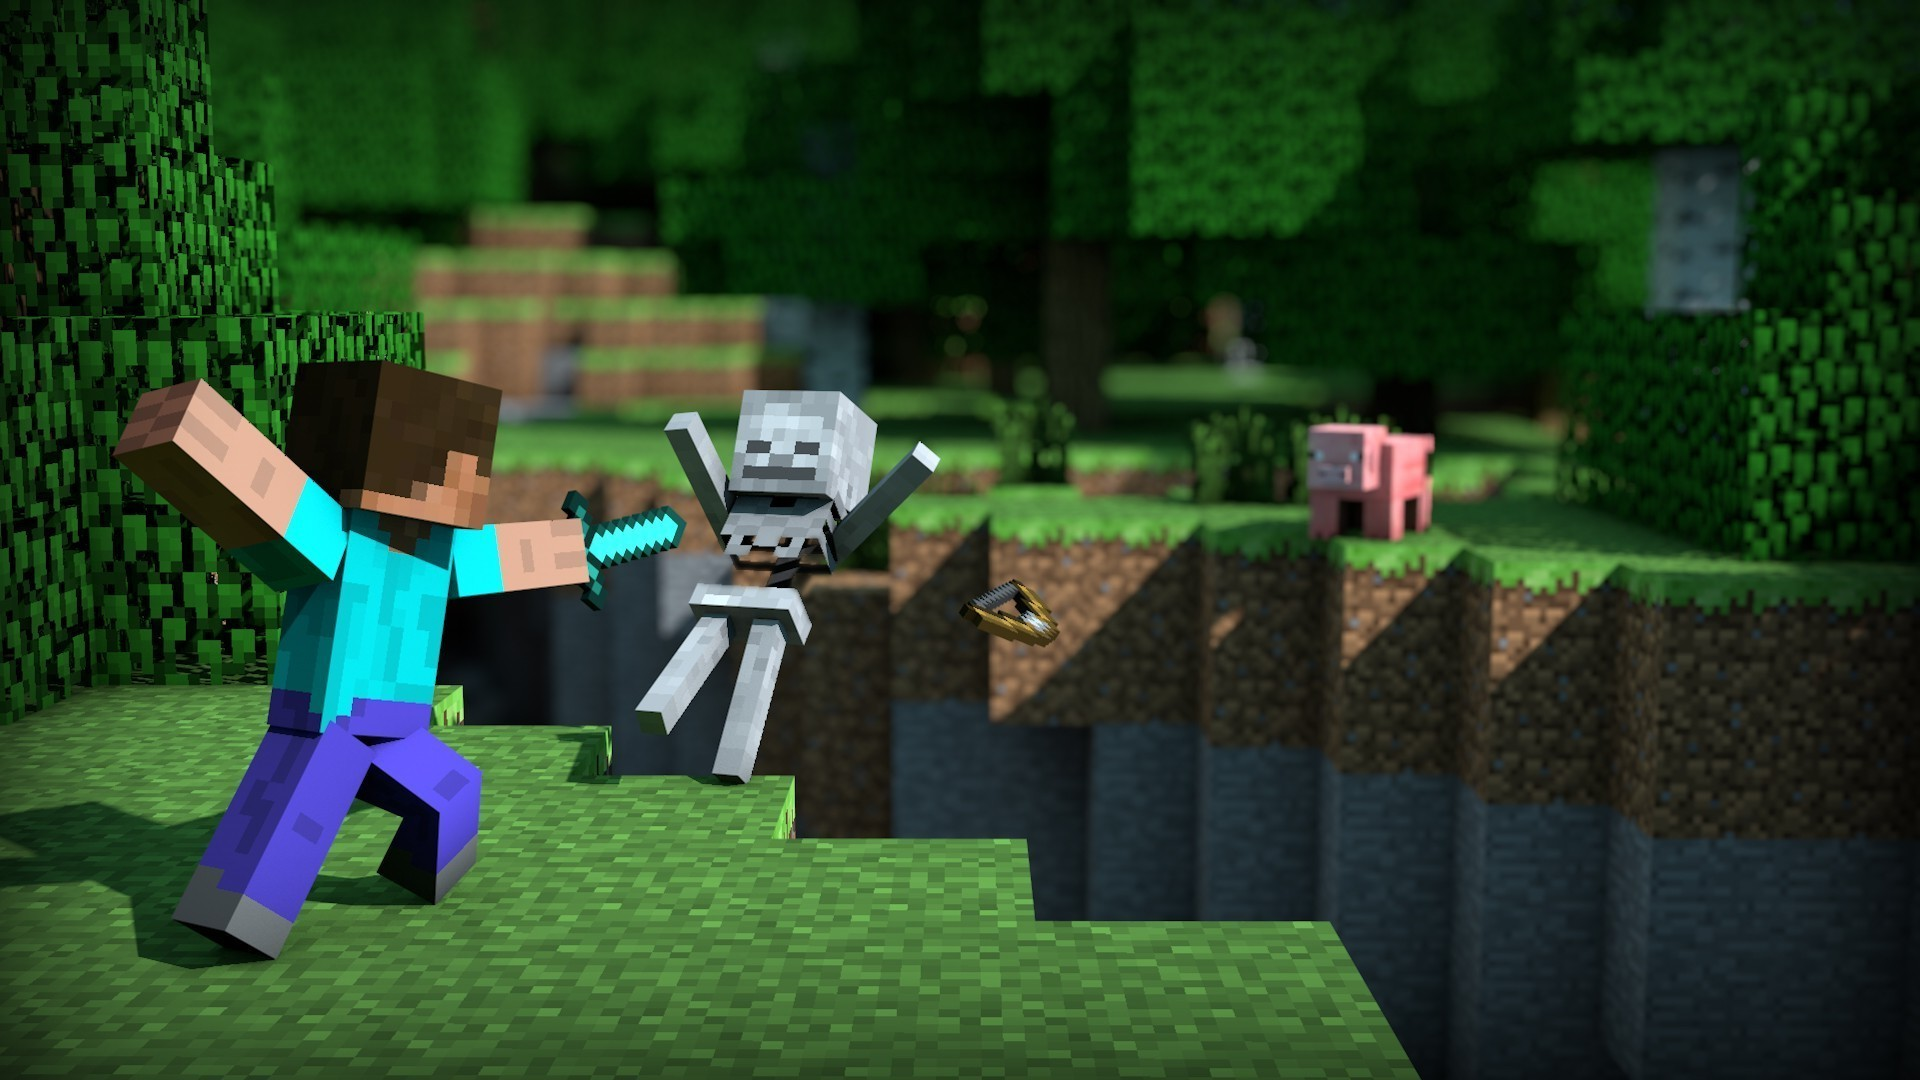 Cool Minecraft Background 83 Images